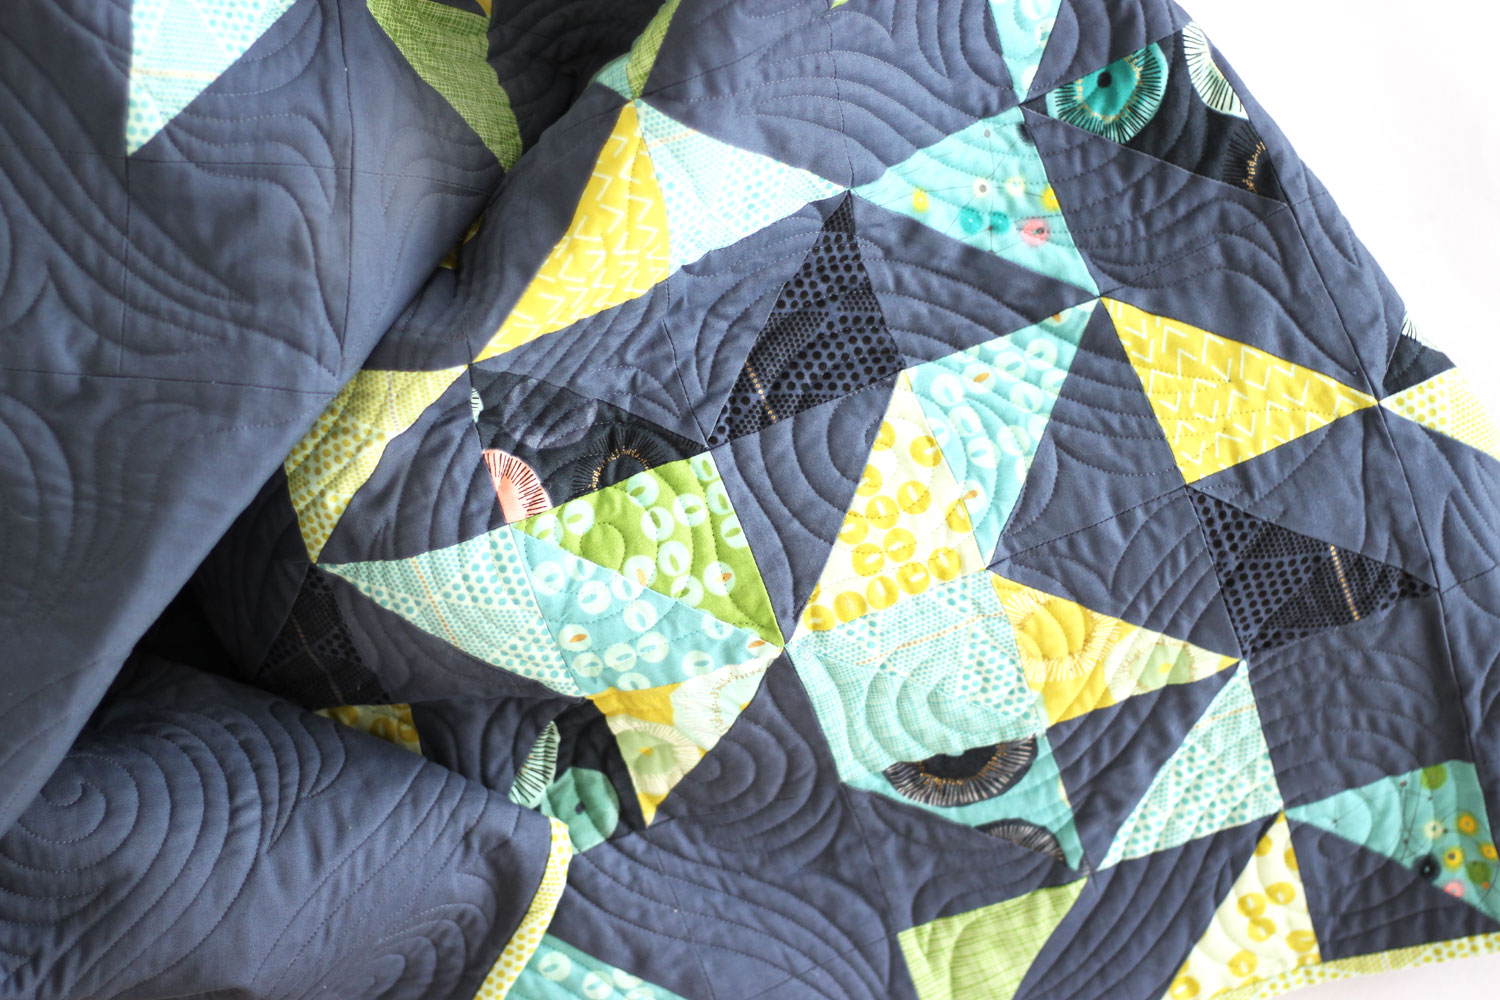 faded-quilt-pattern-by-zen-chic-04.jpg